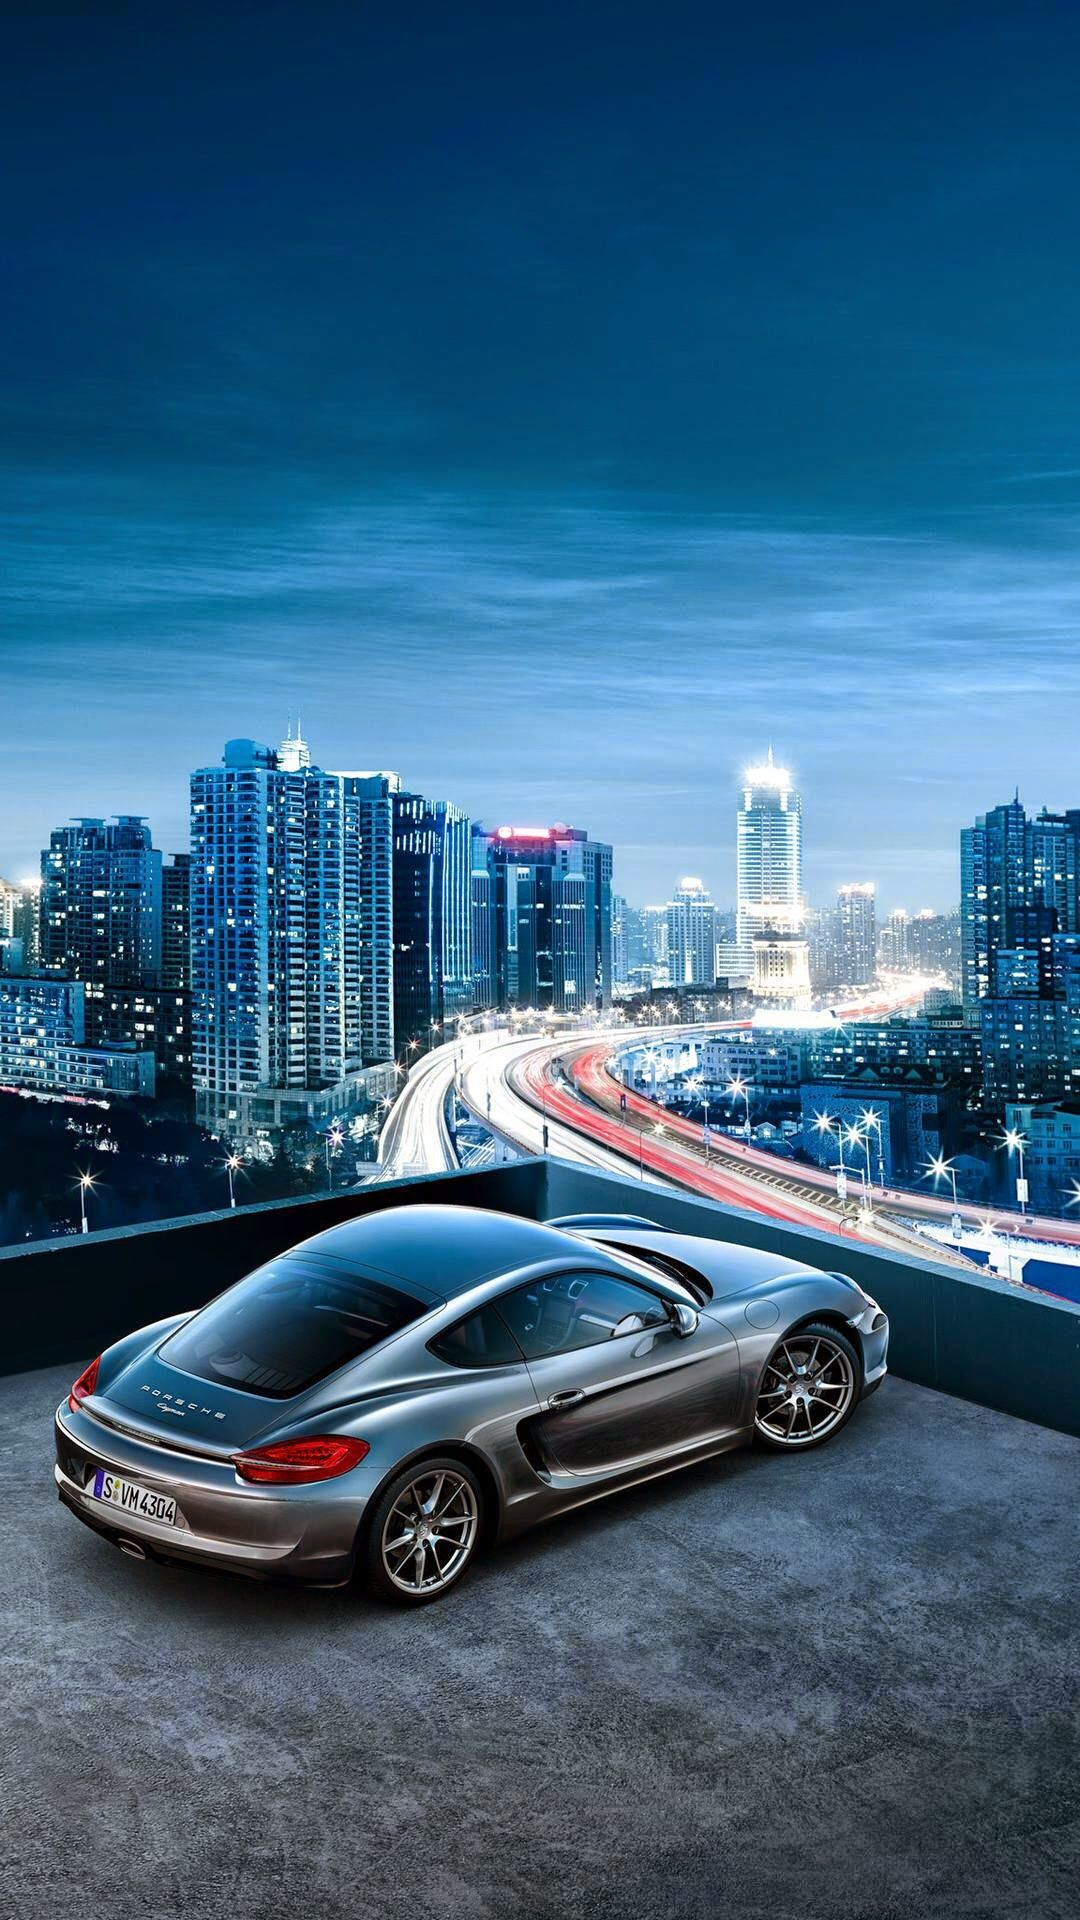 Porsche cayman city view iphone 6 plus hd wallpaper top 10 cars iphone wallpapers